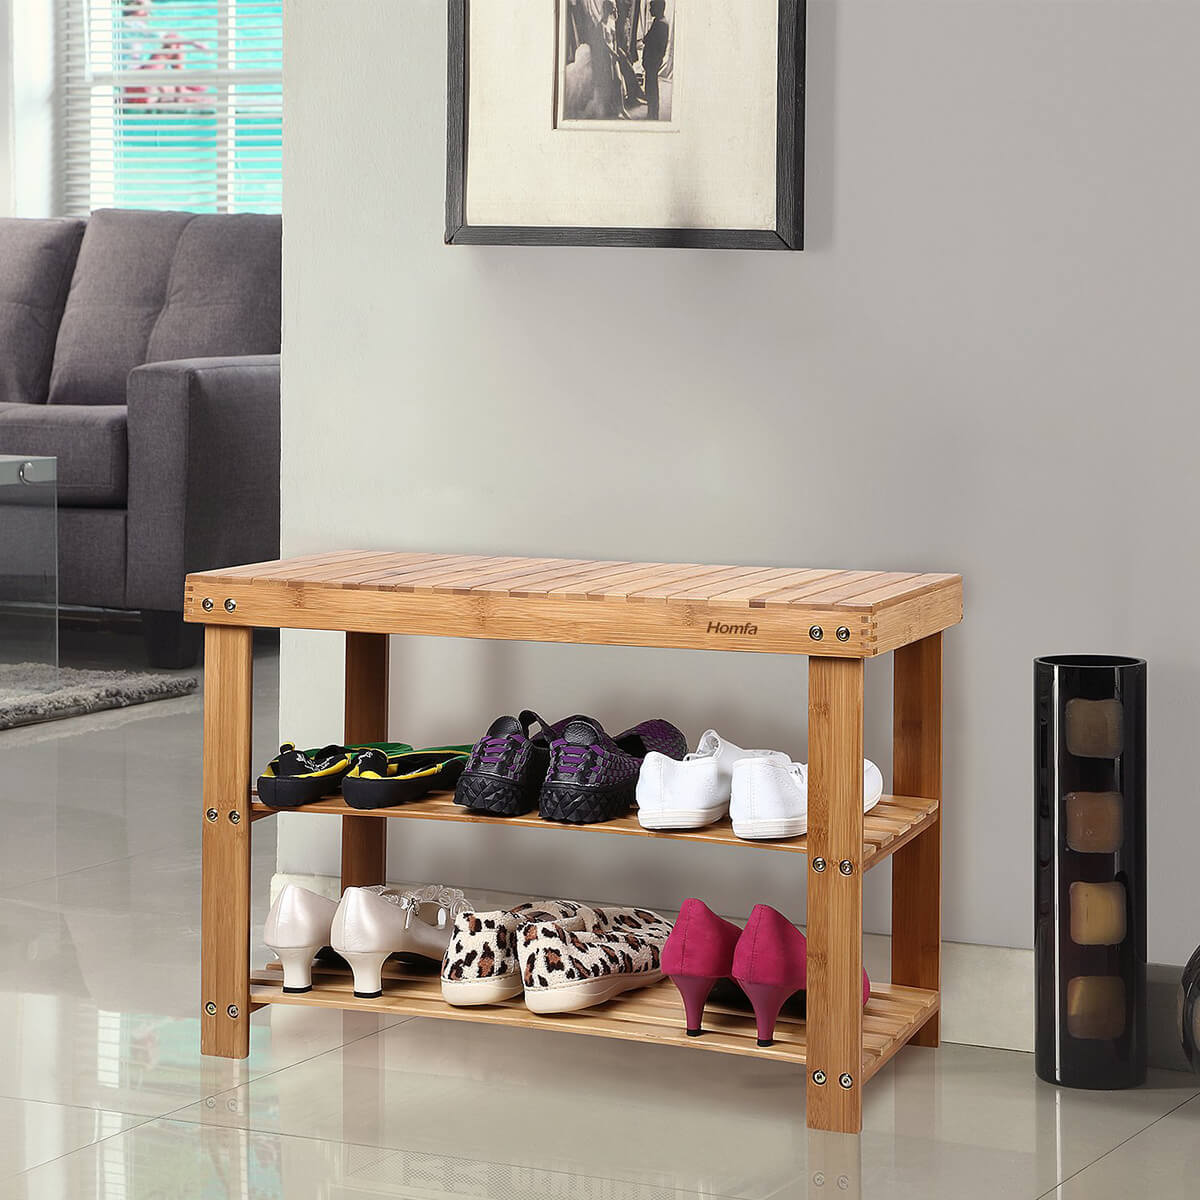 Natural Bamboo Shoe Rack Evokes the Beach